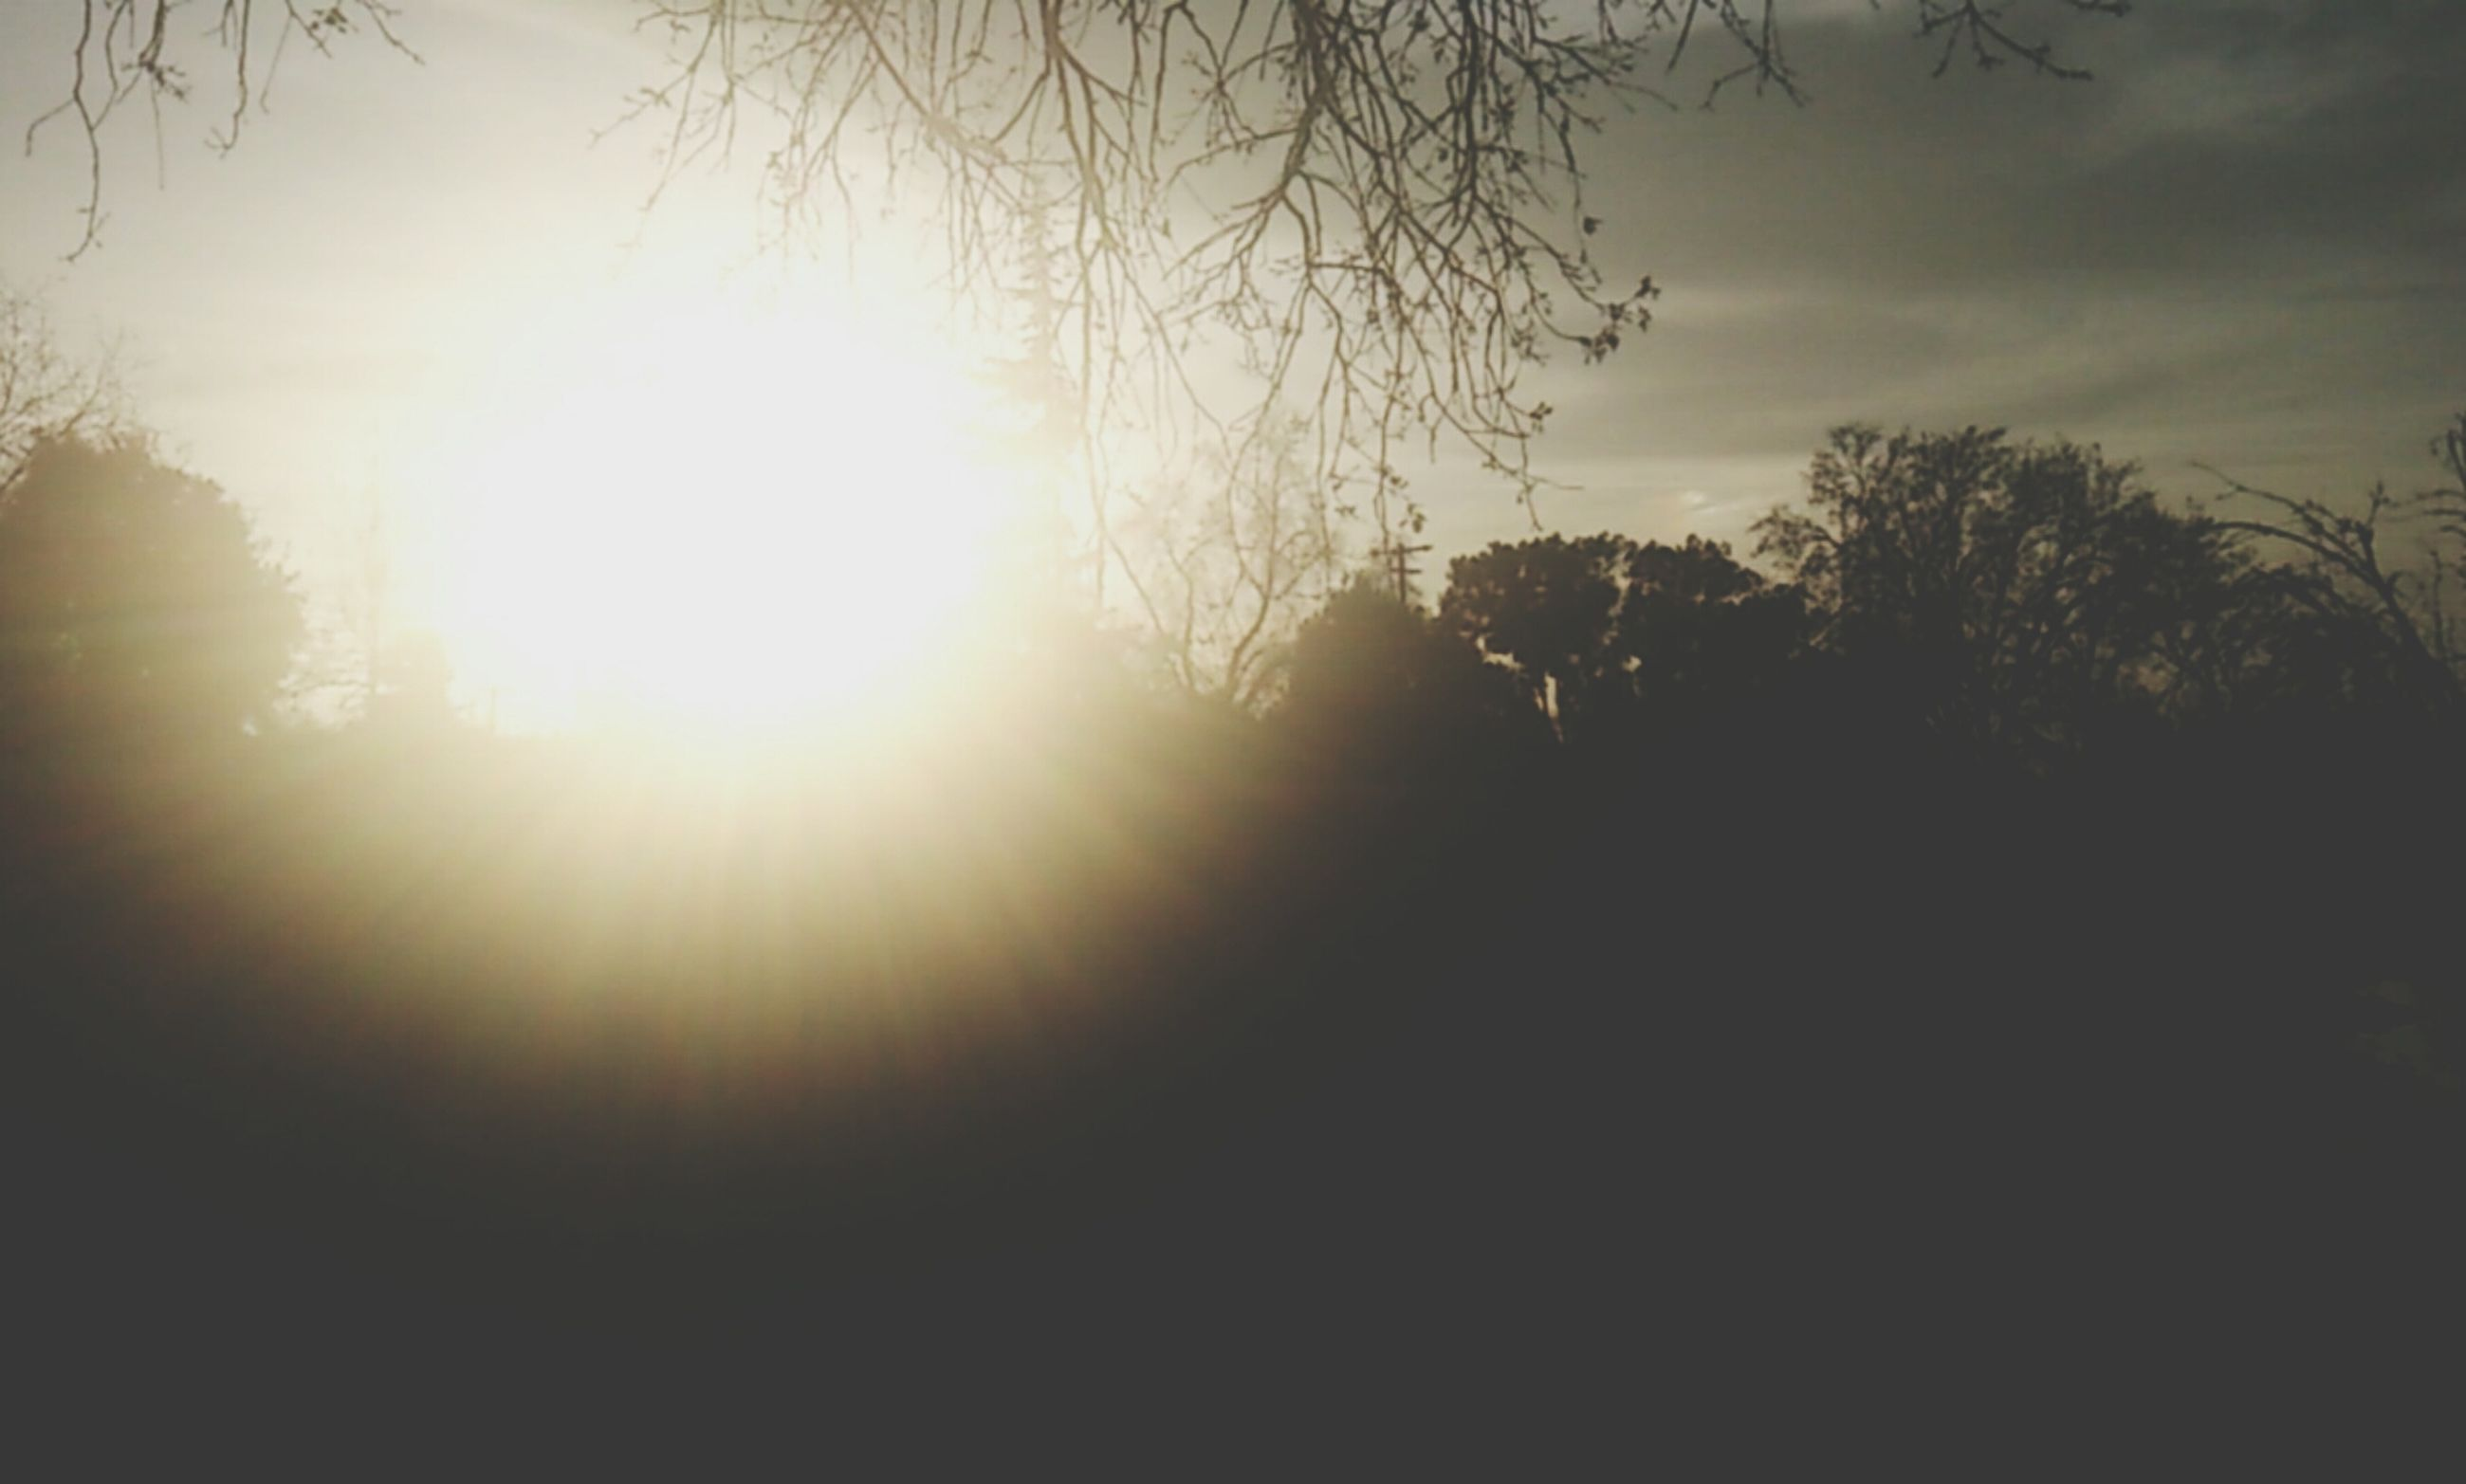 sun, tree, silhouette, sunbeam, sunlight, sky, sunset, tranquility, lens flare, nature, tranquil scene, beauty in nature, scenics, low angle view, branch, bare tree, bright, outdoors, growth, no people